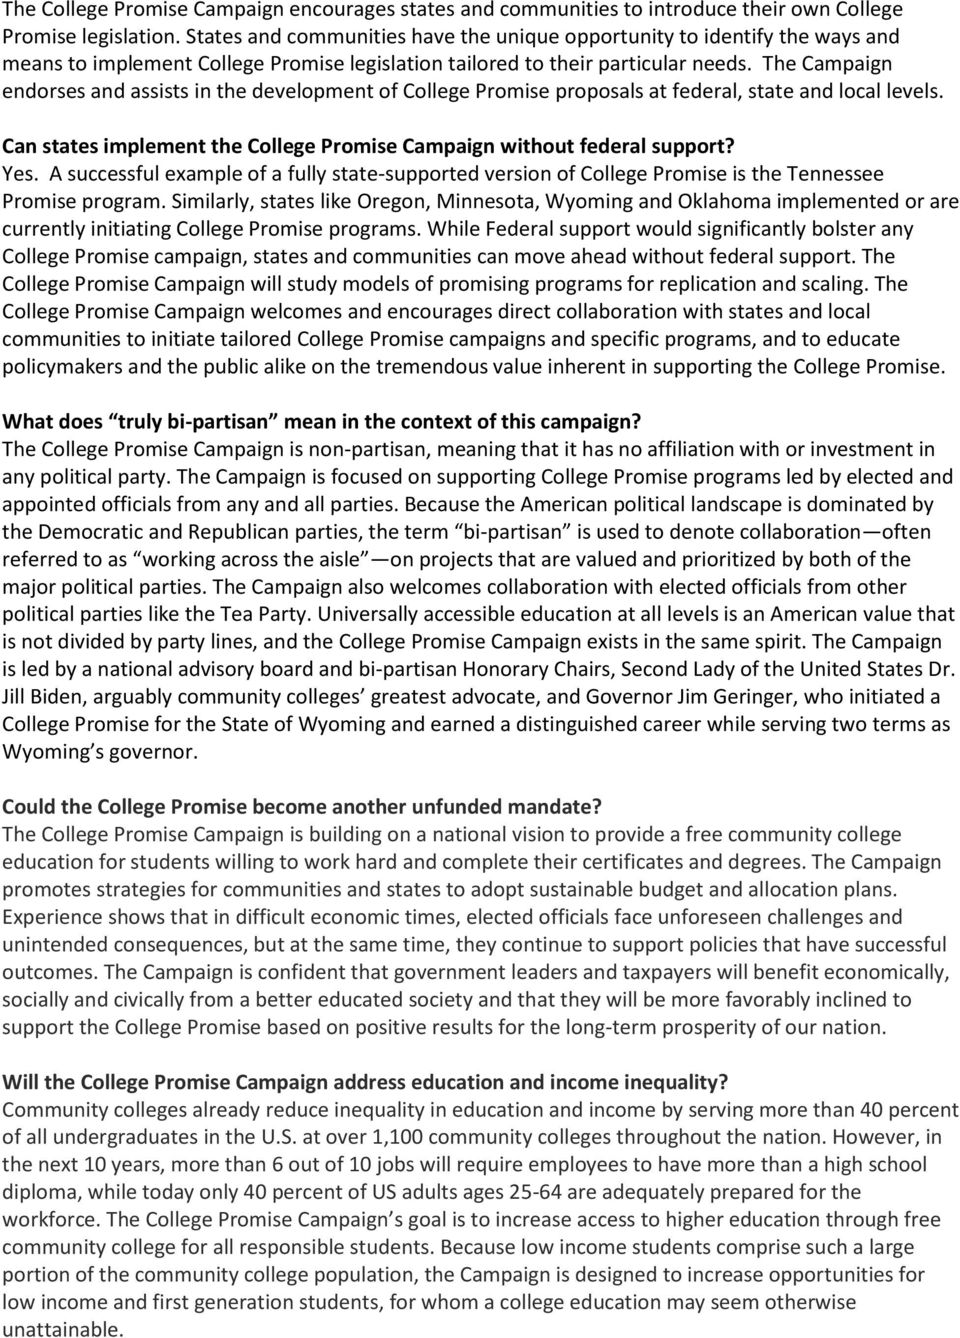 The Campaign endorses and assists in the development of College Promise proposals at federal, state and local levels. Can states implement the College Promise Campaign without federal support? Yes.